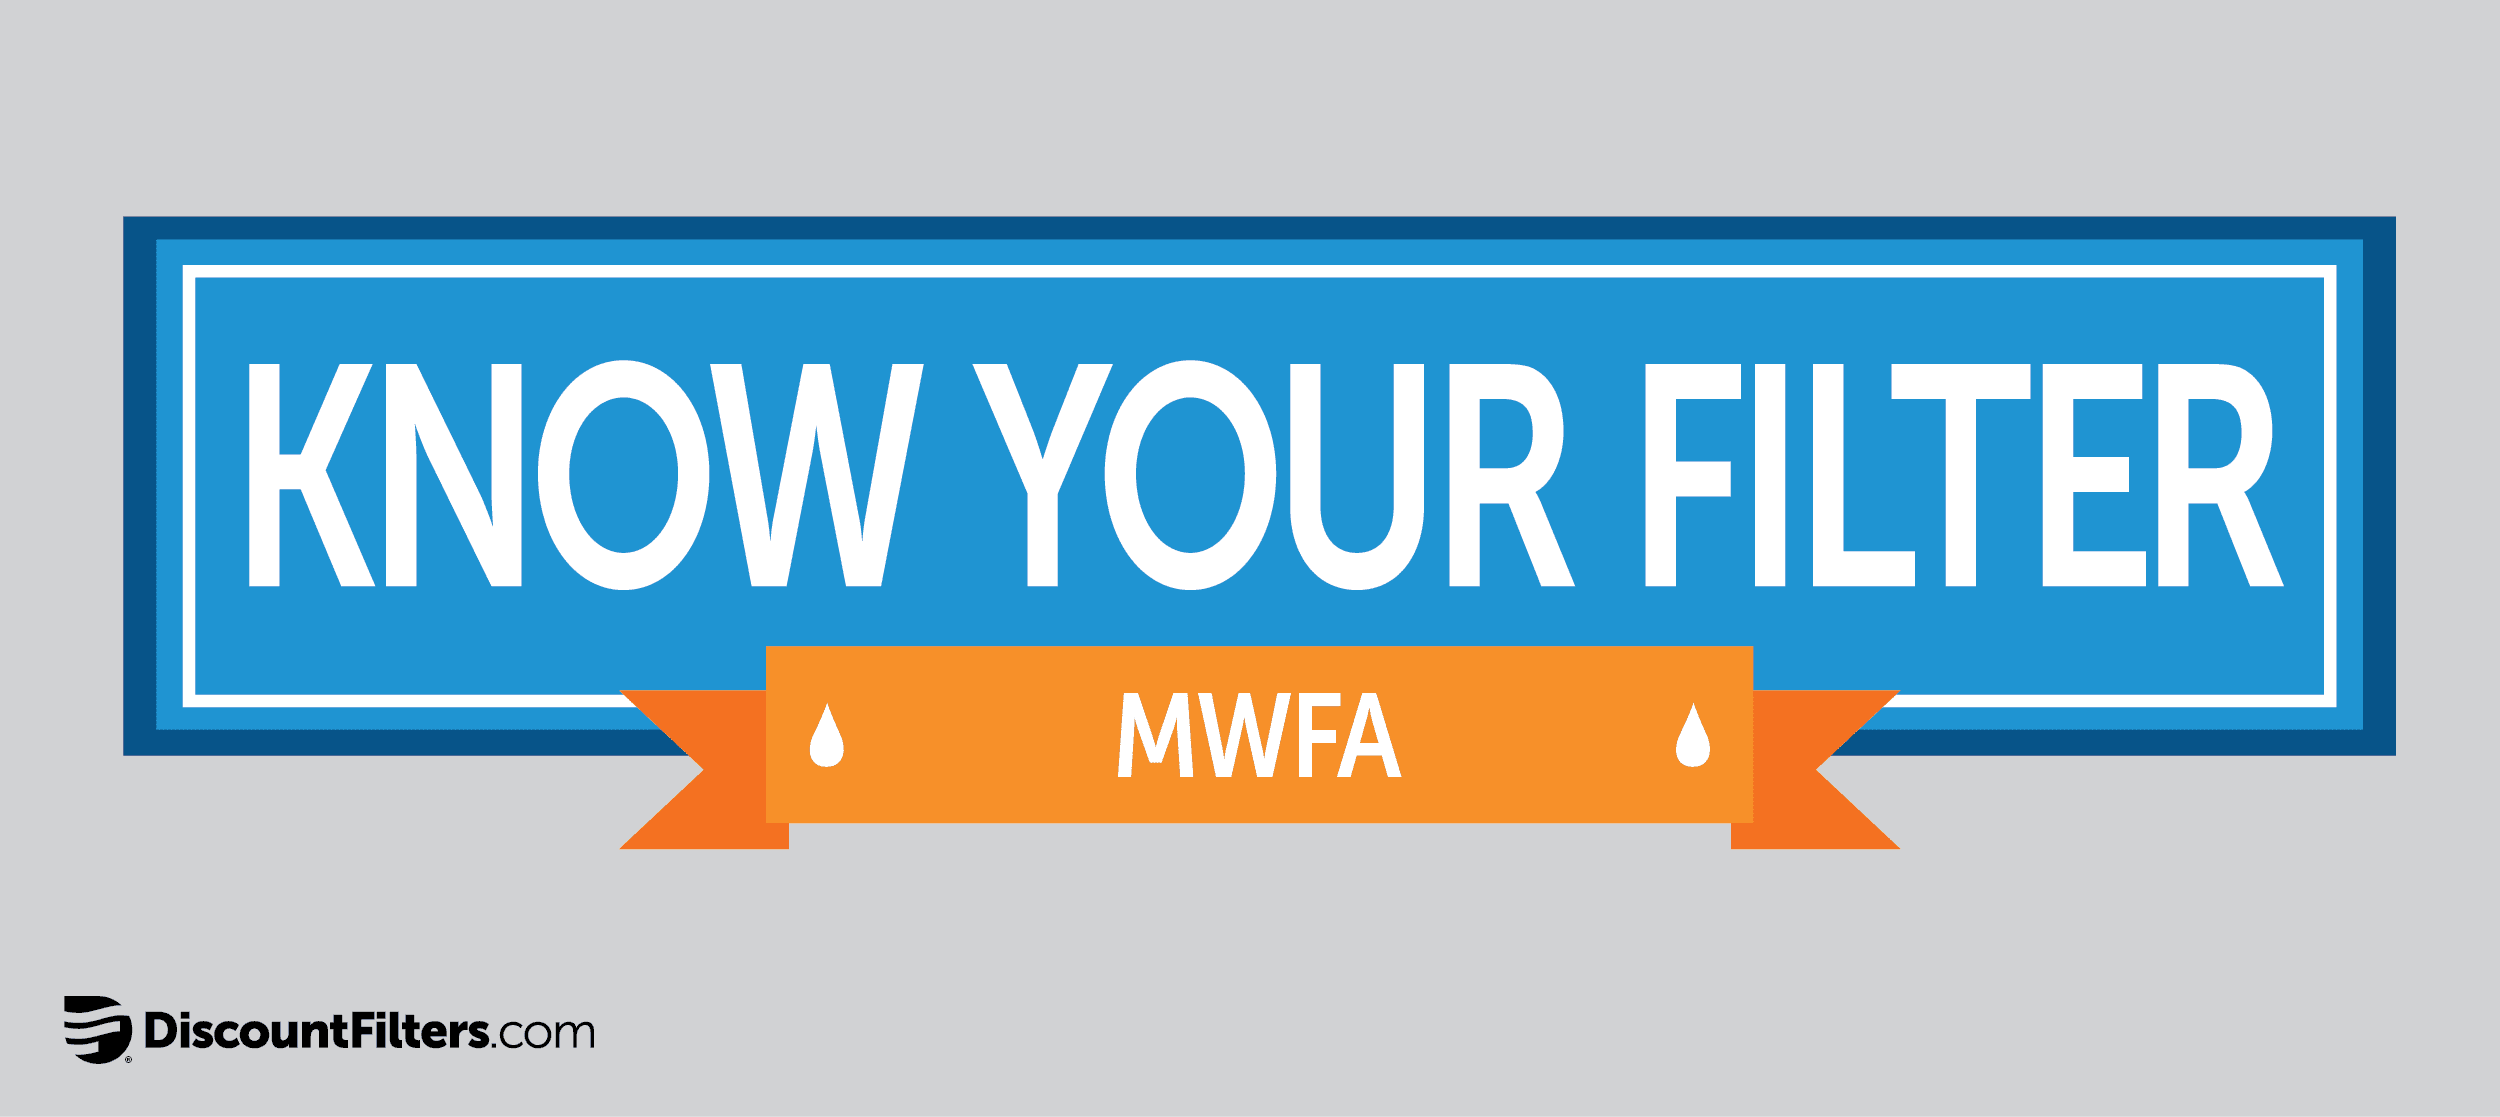 mwfa mwf filter replacement